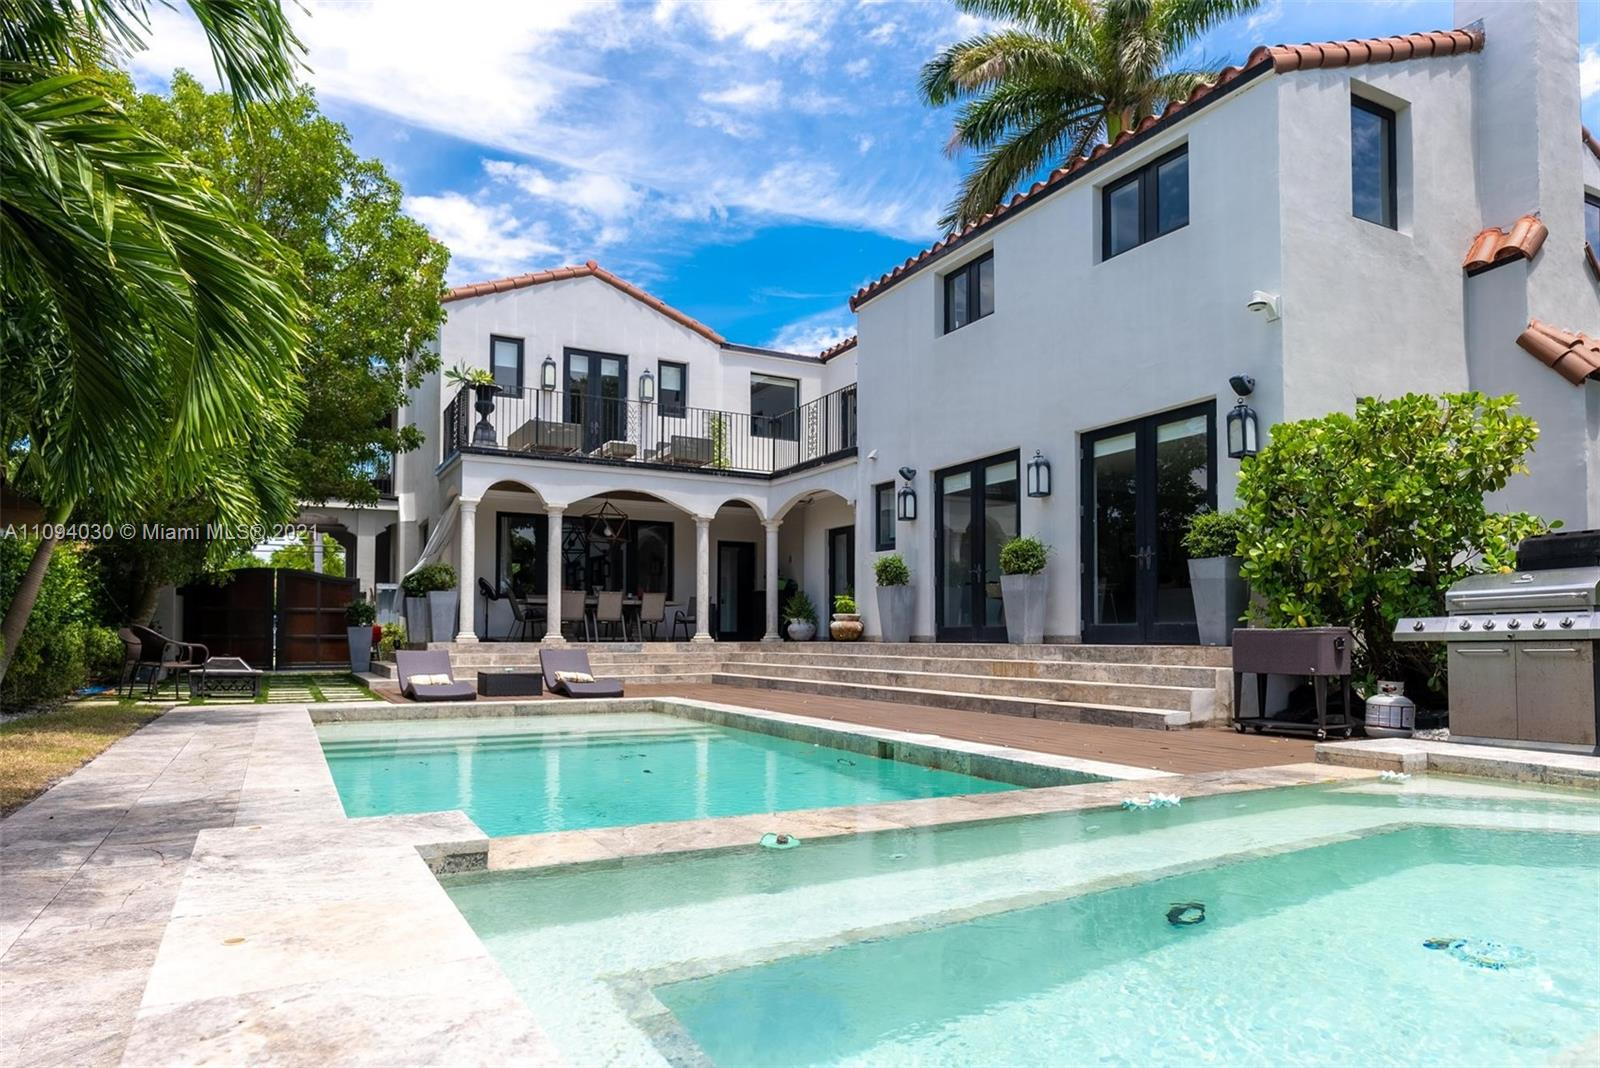 4315 N Meridian Ave  For Sale A11094030, FL